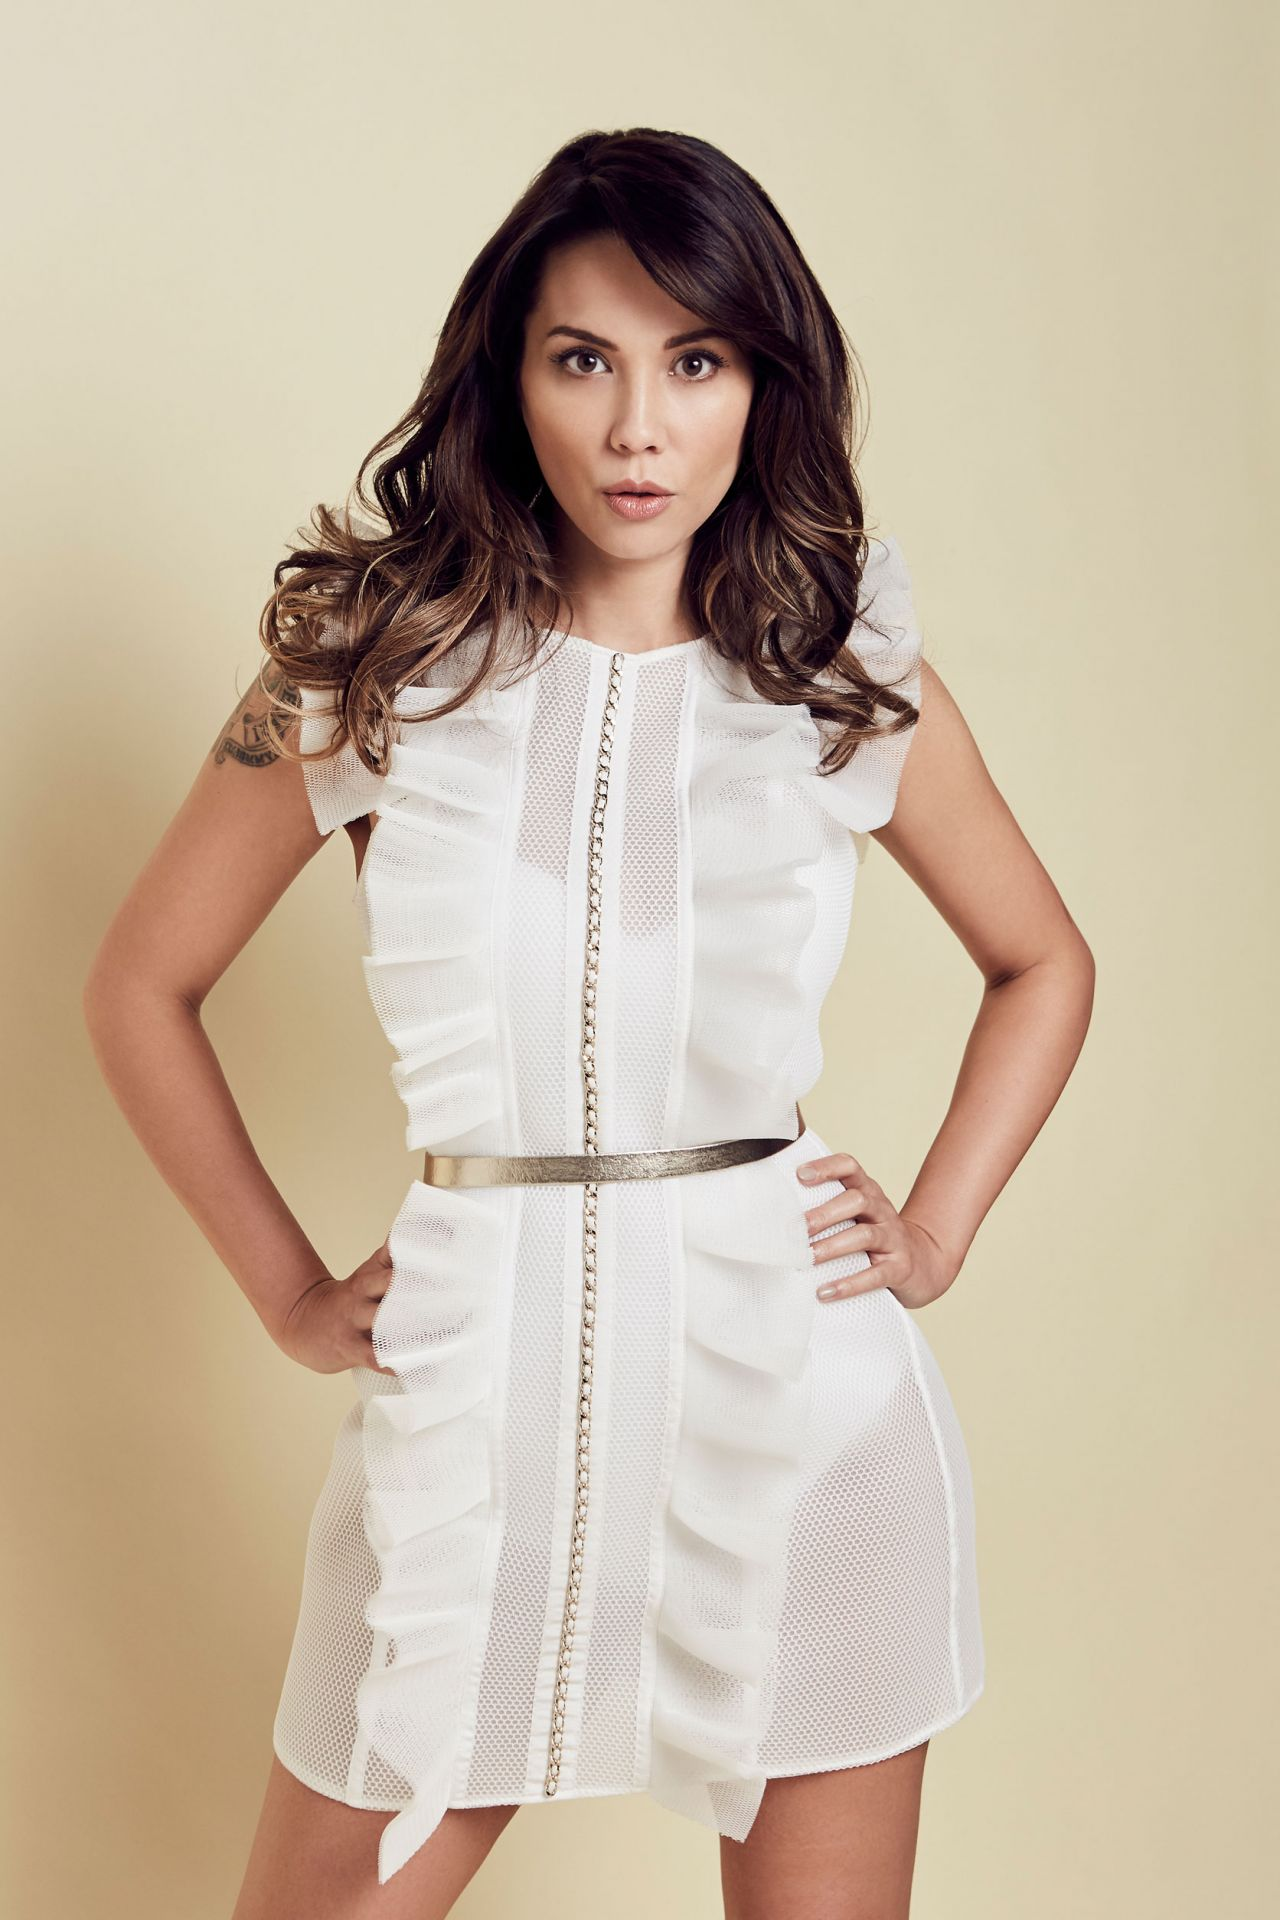 Lexa Doig Photoshoot For Sharp Magazine March 2017